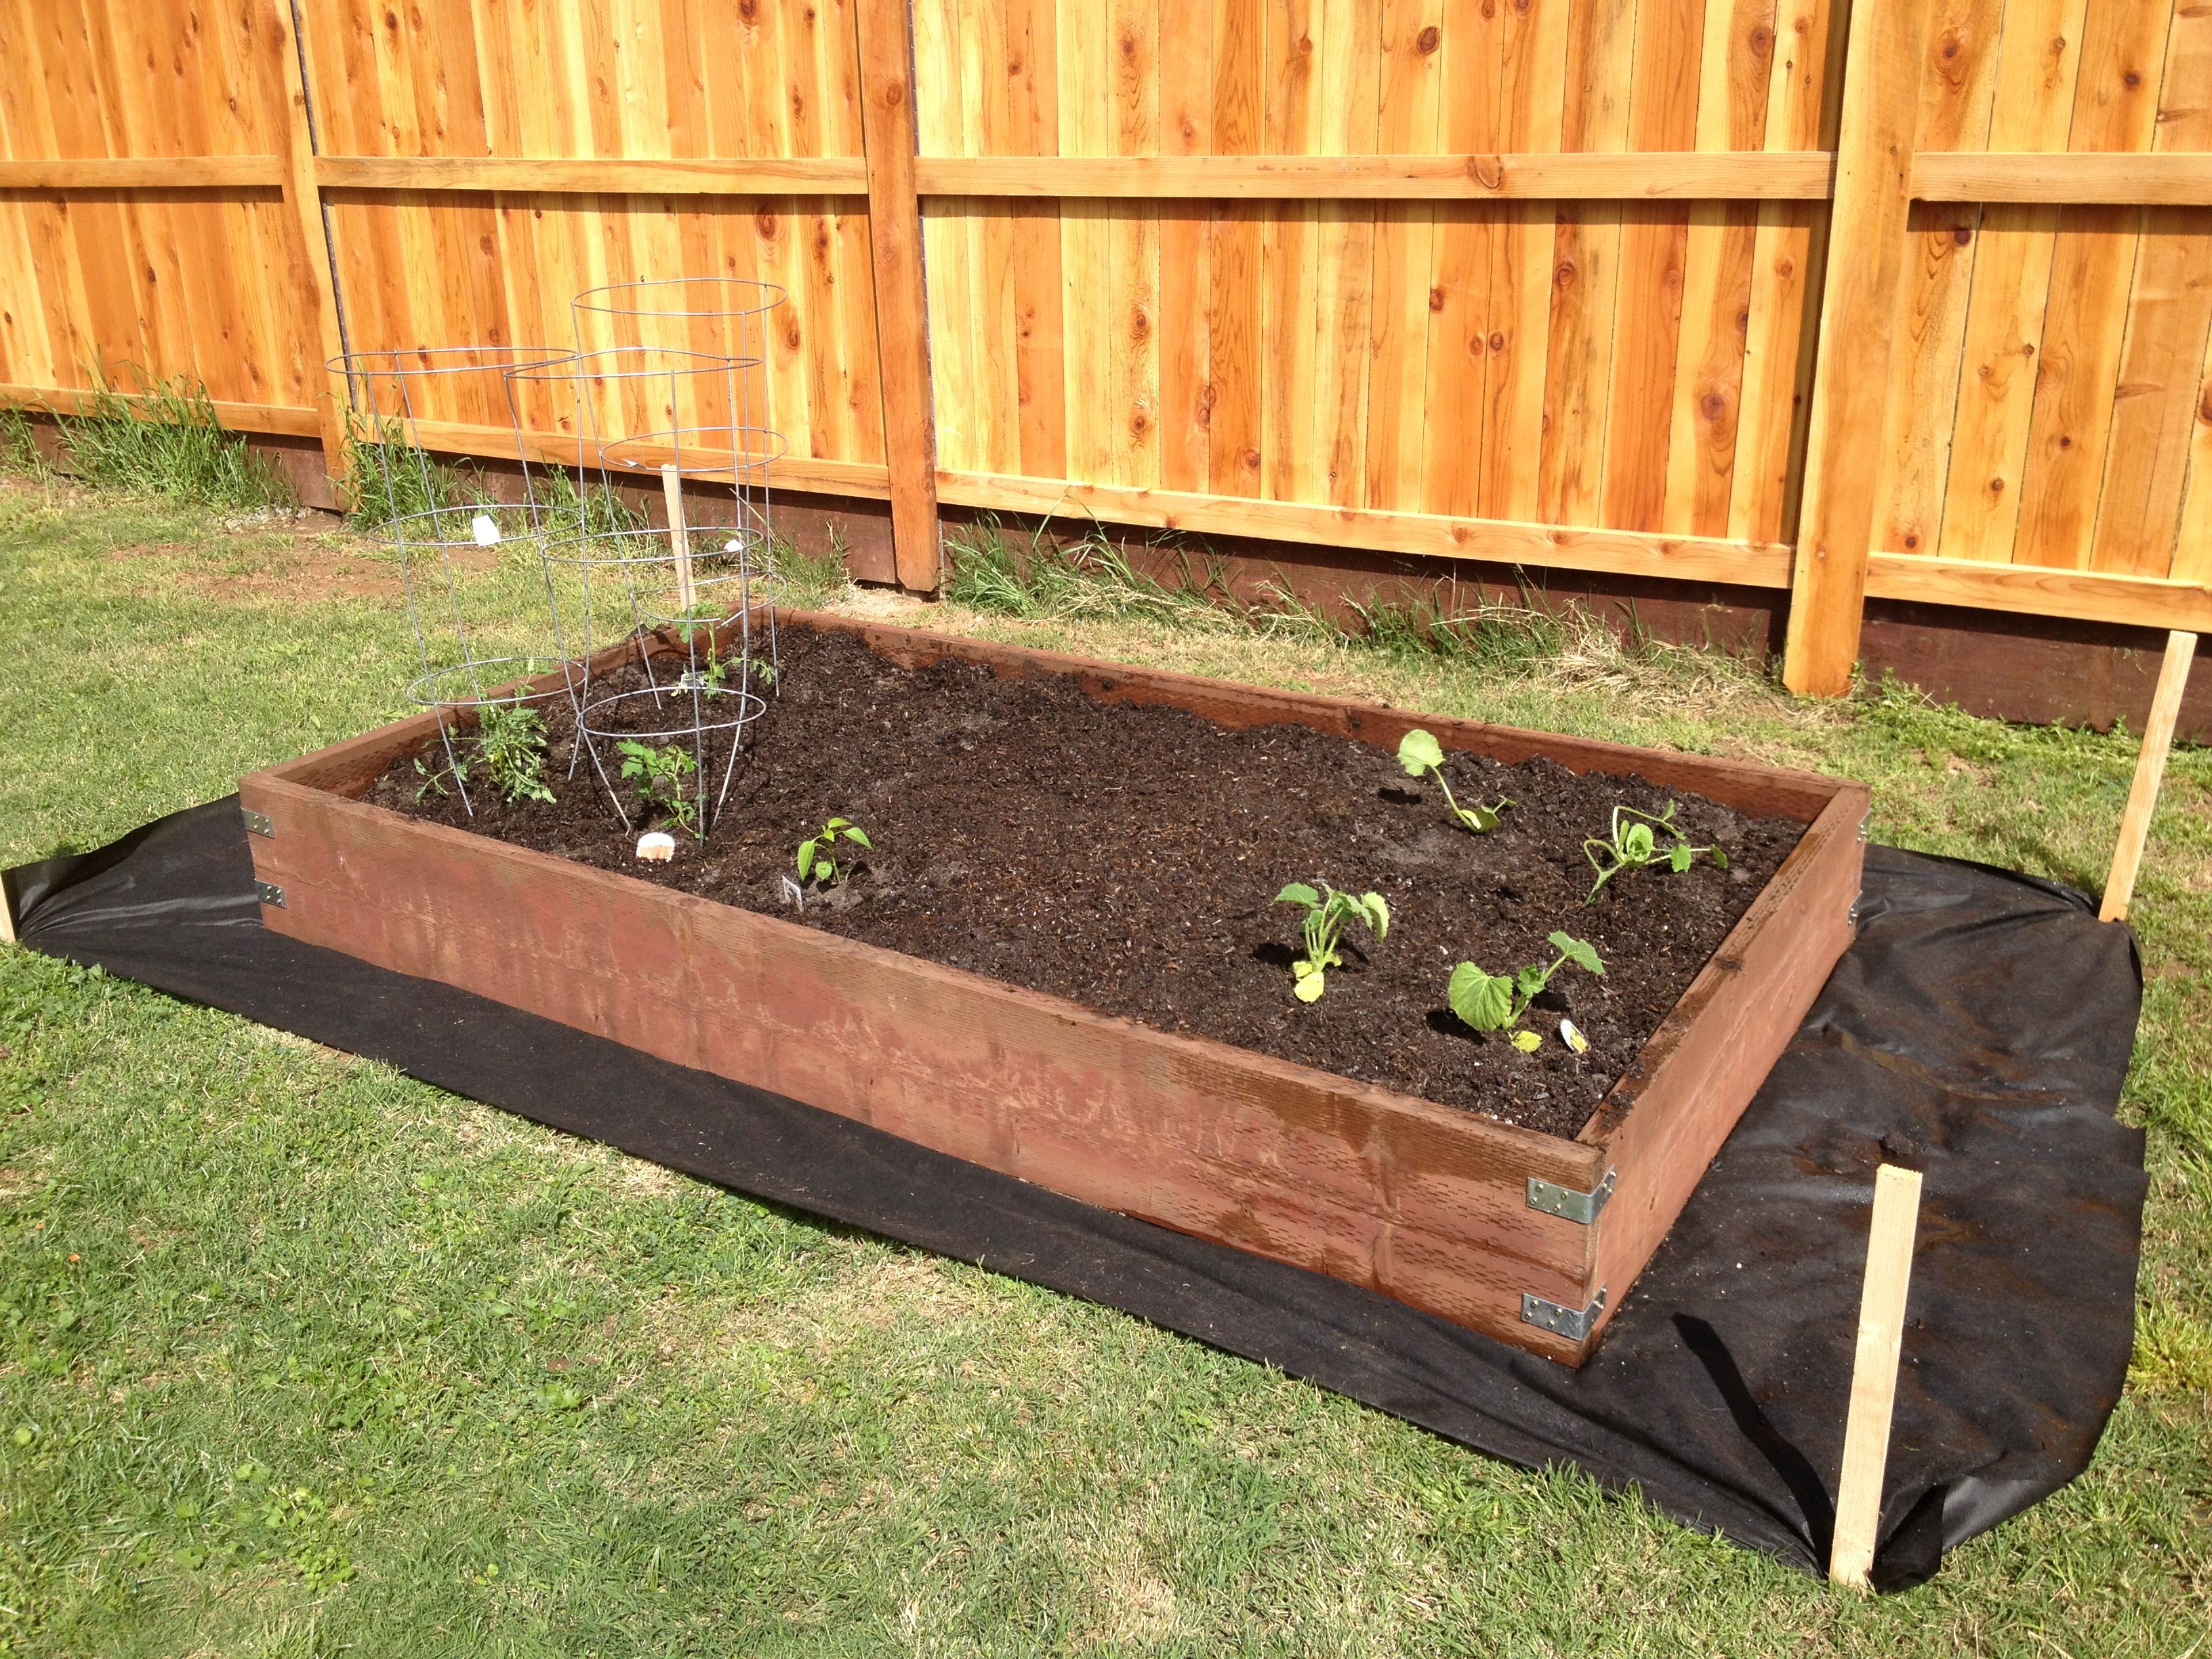 Merveilleux Garden Box Made Using 2x12 Pressure Treated Wood And L Brackets Supported  With Screws To Hold